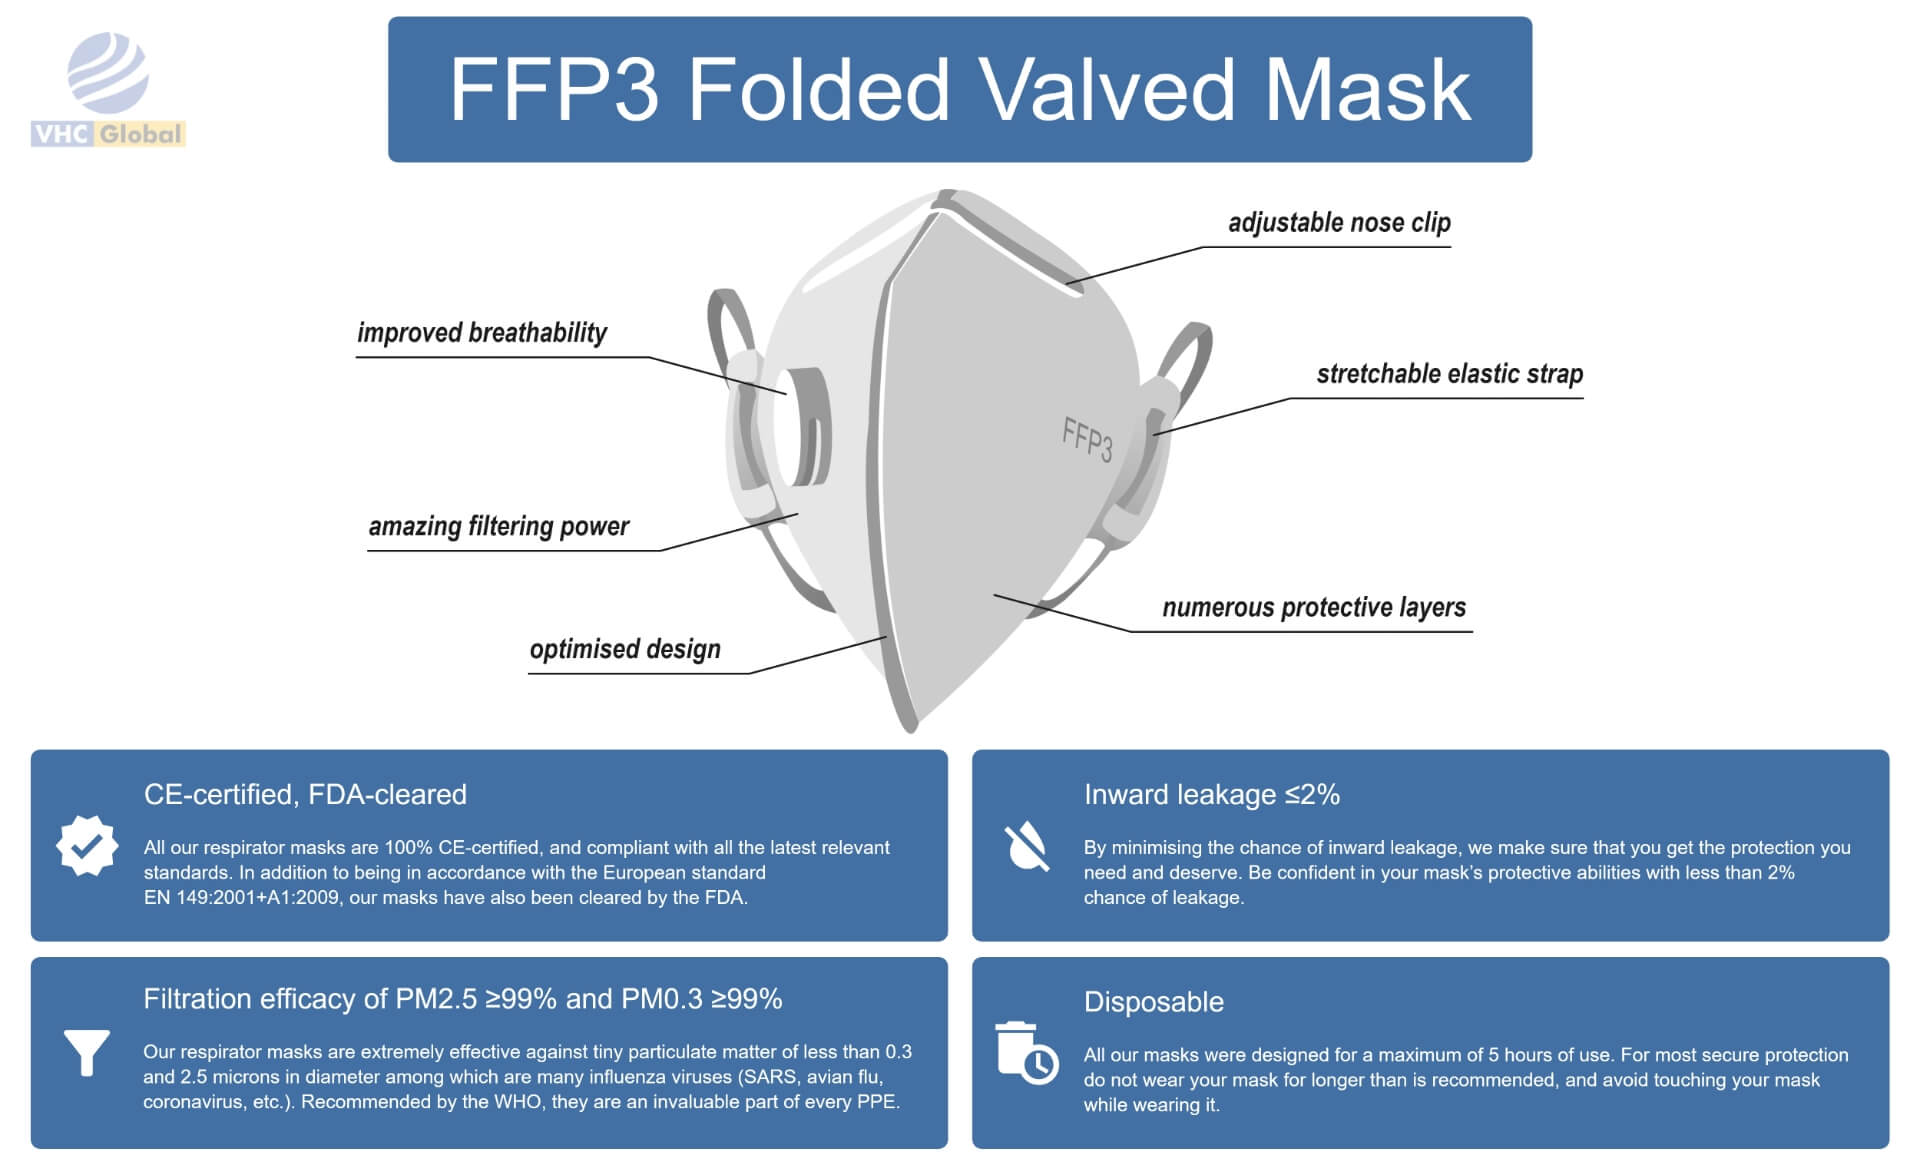 Infographic for the FFP3 Folded Valved Mask. All details for this mask are on this infographic. From nose to the chin. Adjustable nose clip, improved breathability, numerous protective layers, amazing filtering power, optimized design and stretchable elastic strap